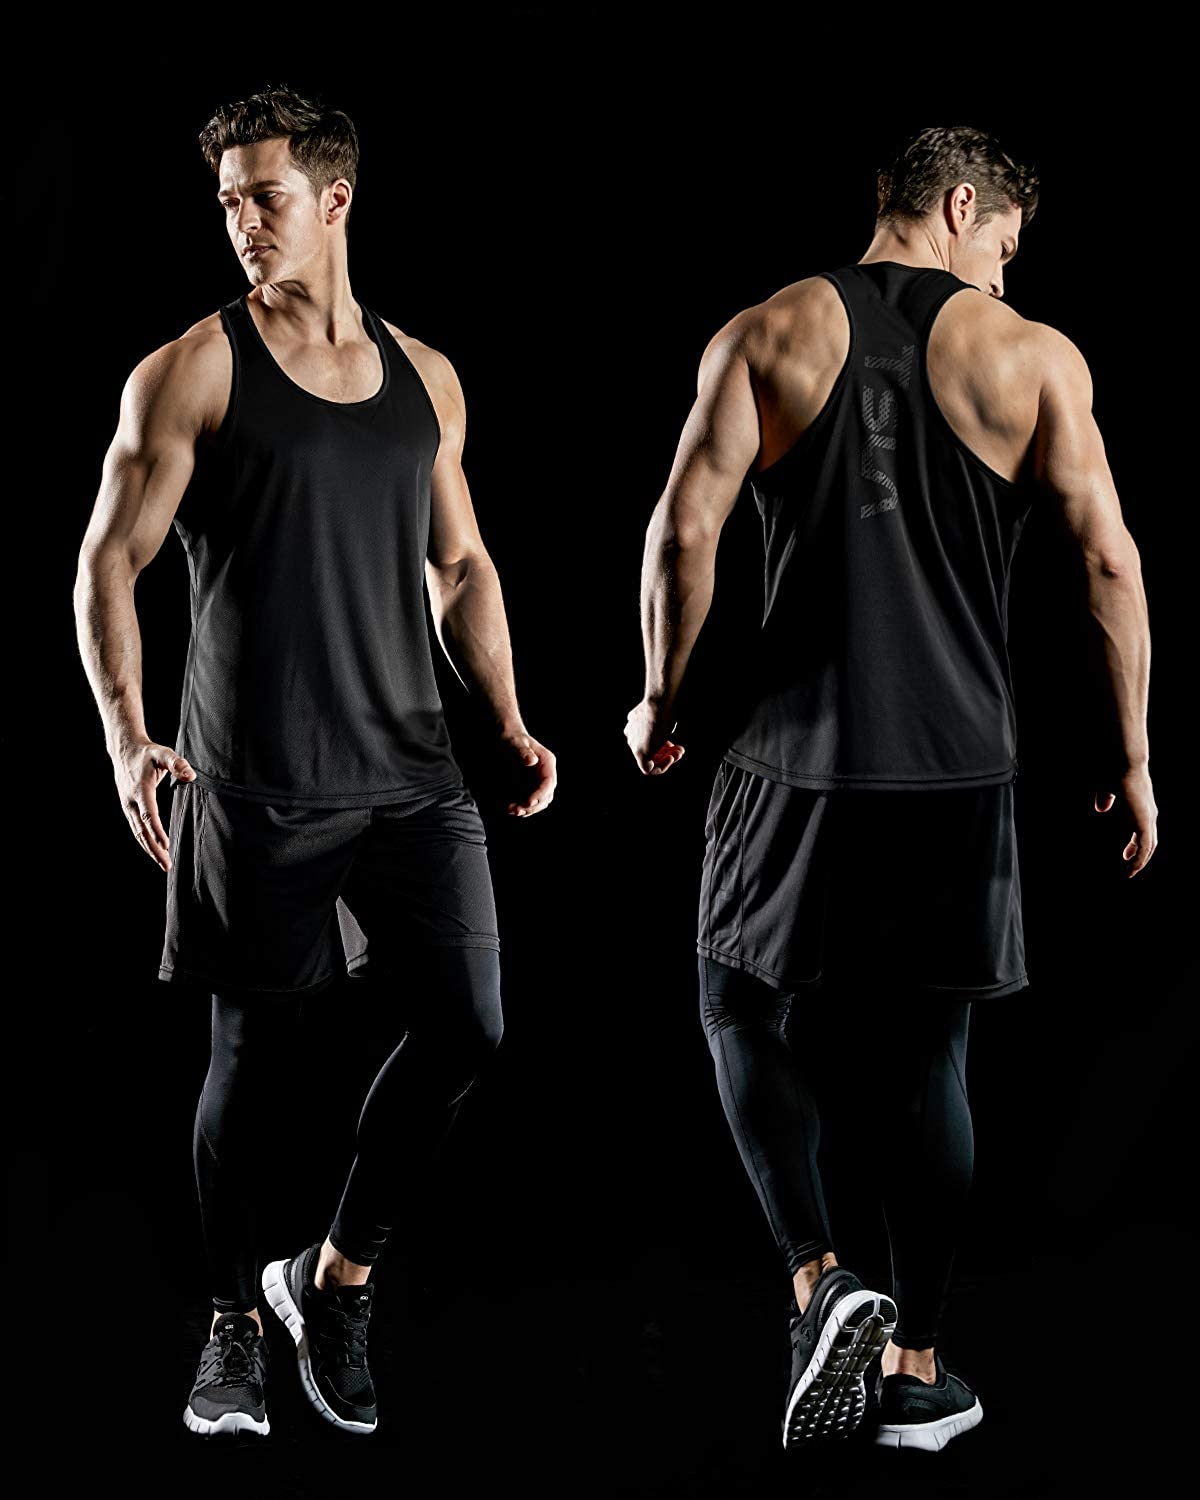 Sleeveless Bodybuilding Shirts TSLA 3 Pack Mens Dry Fit Y-Back Muscle Workout Tank Tops Athletic Training Gym Tank Top